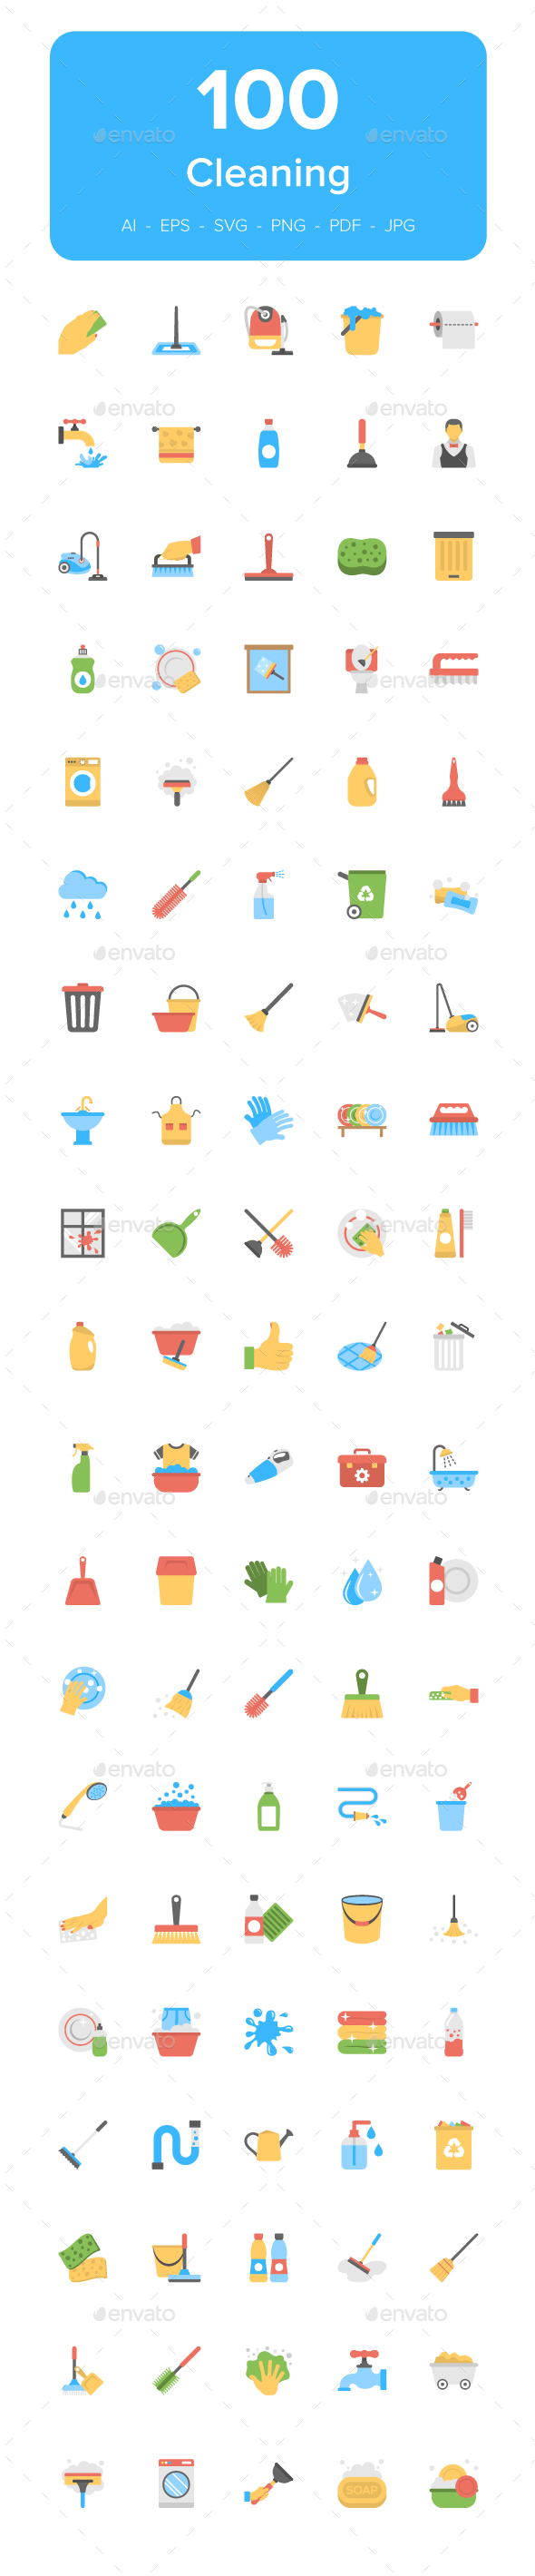 Cleaning Equipment and Accessories - Icons